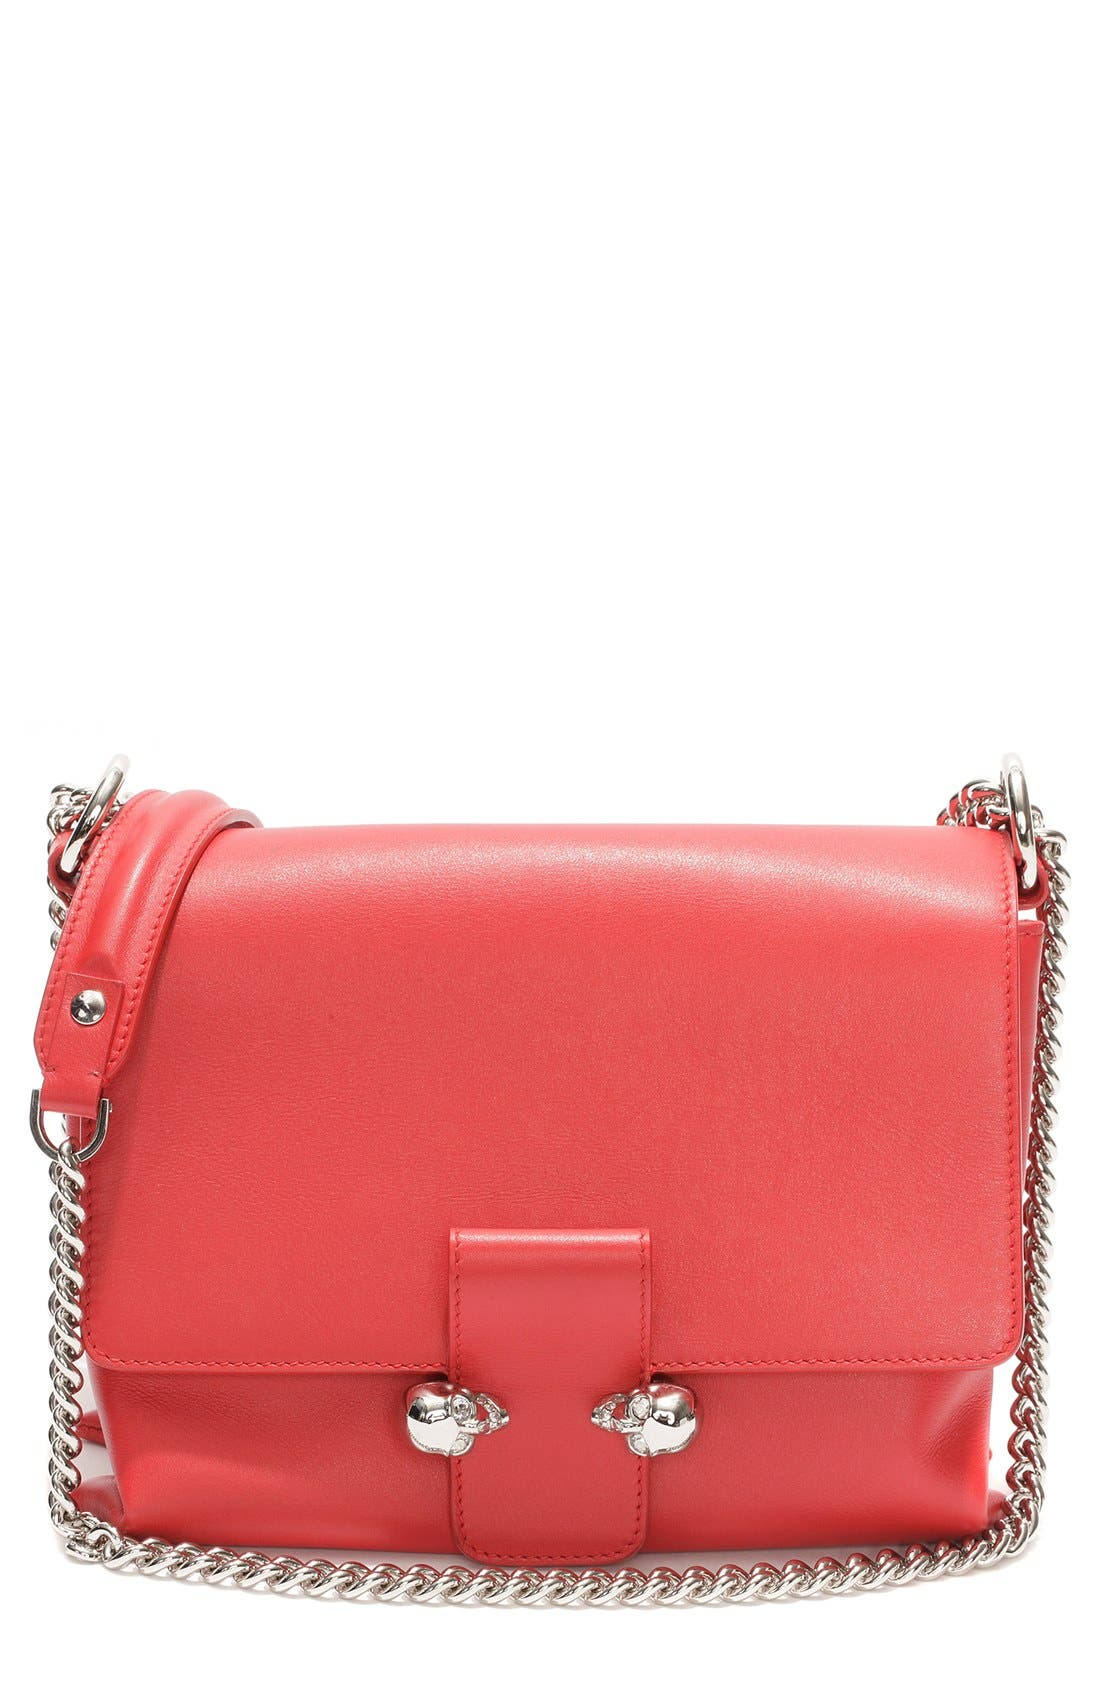 Main Image - Alexander McQueen 'Medium Twin Skull' Flap Shoulder Bag